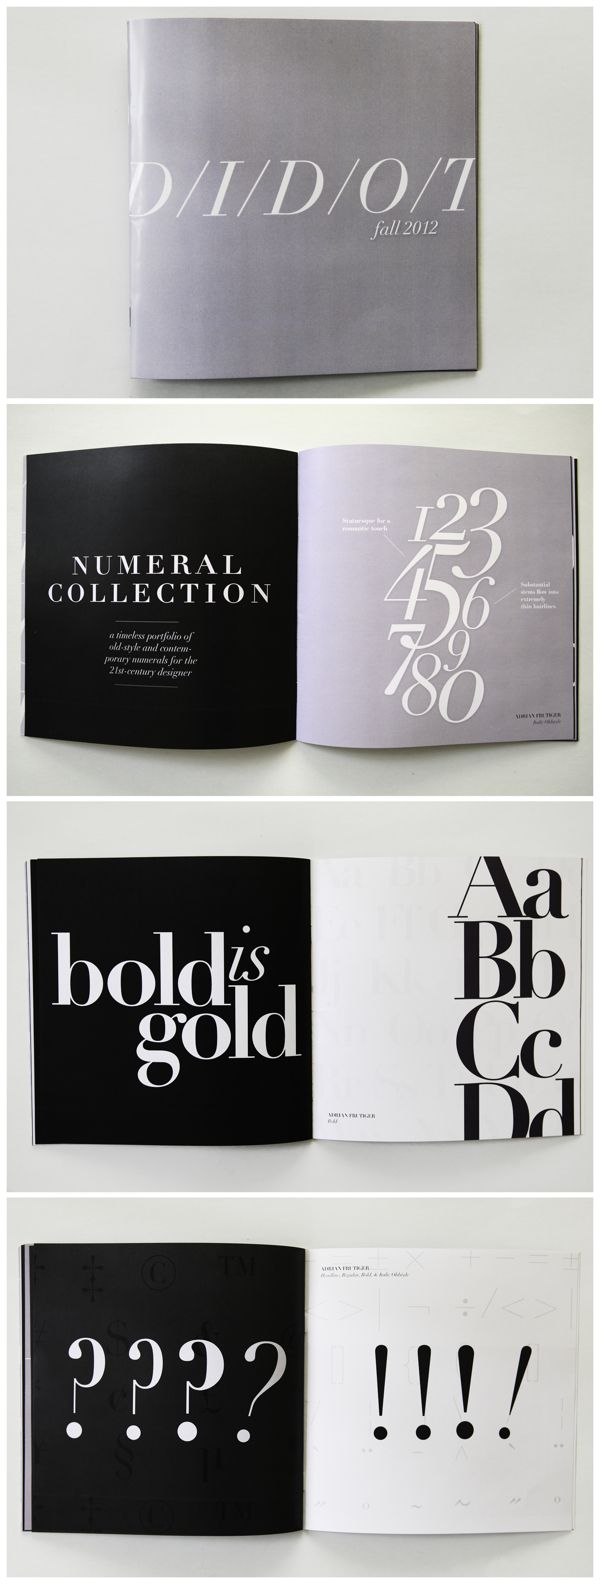 """Didot: A Type Specimen Book by Celi Birke, via Behance"""